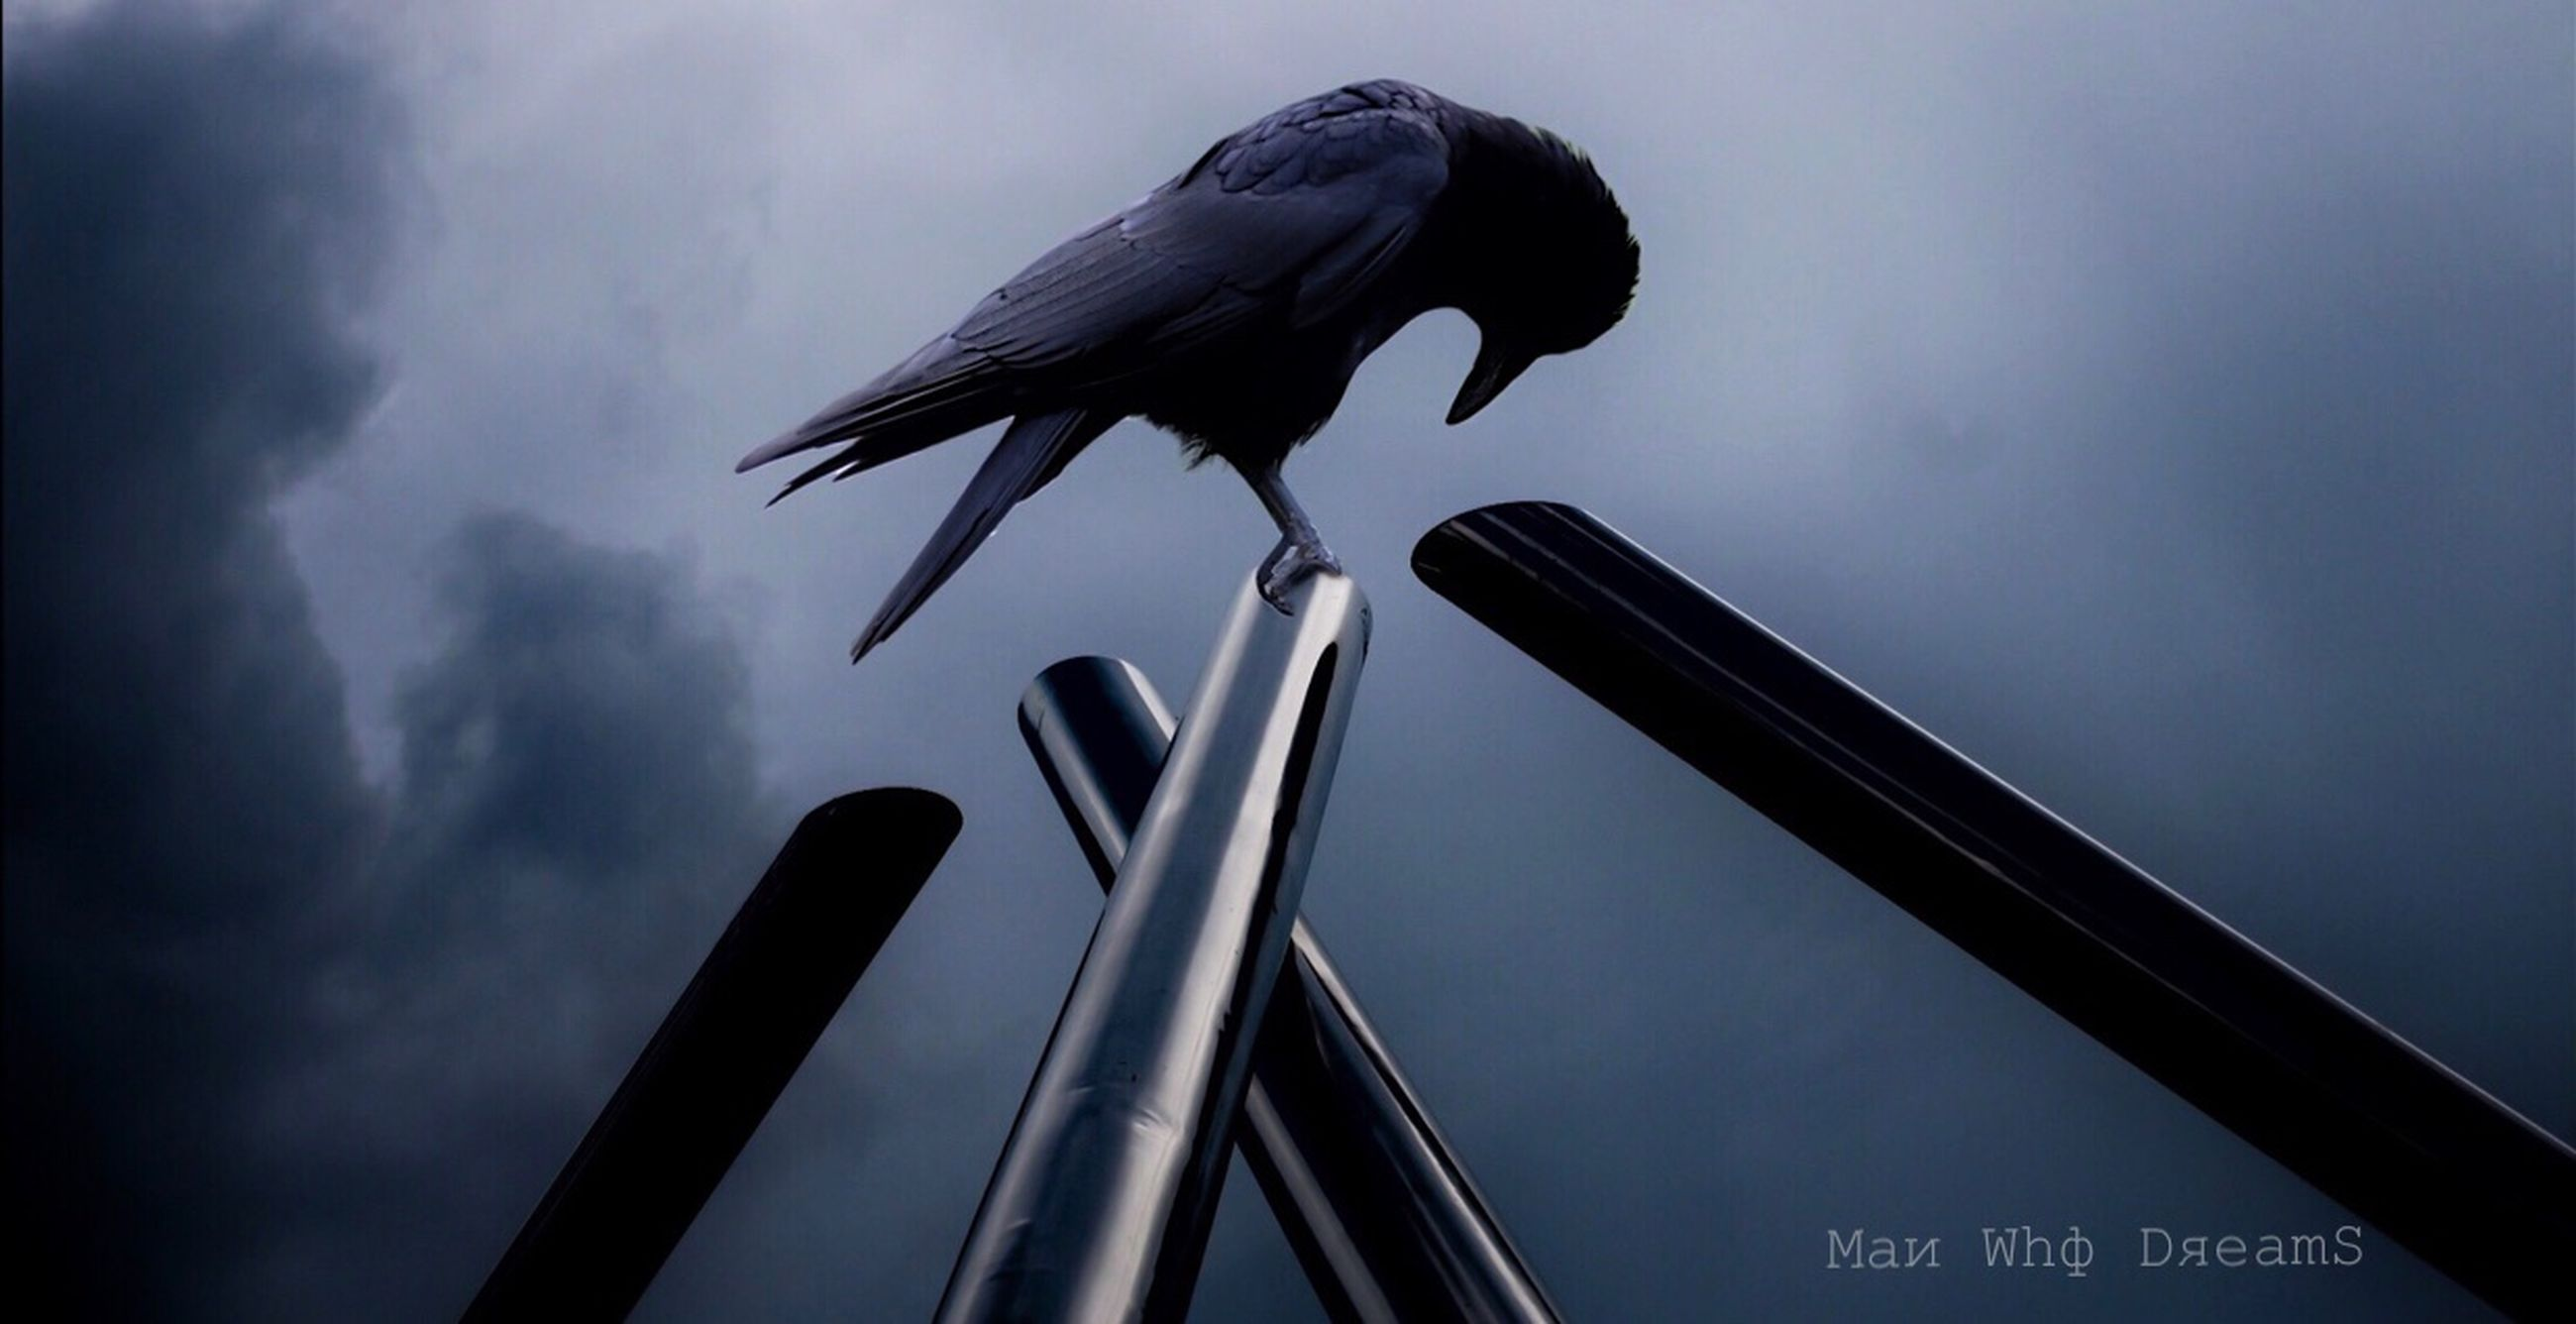 animal, bird, animal themes, animal wildlife, one animal, vertebrate, animals in the wild, sky, low angle view, no people, cloud - sky, perching, nature, day, outdoors, architecture, metal, crow, focus on foreground, raven - bird